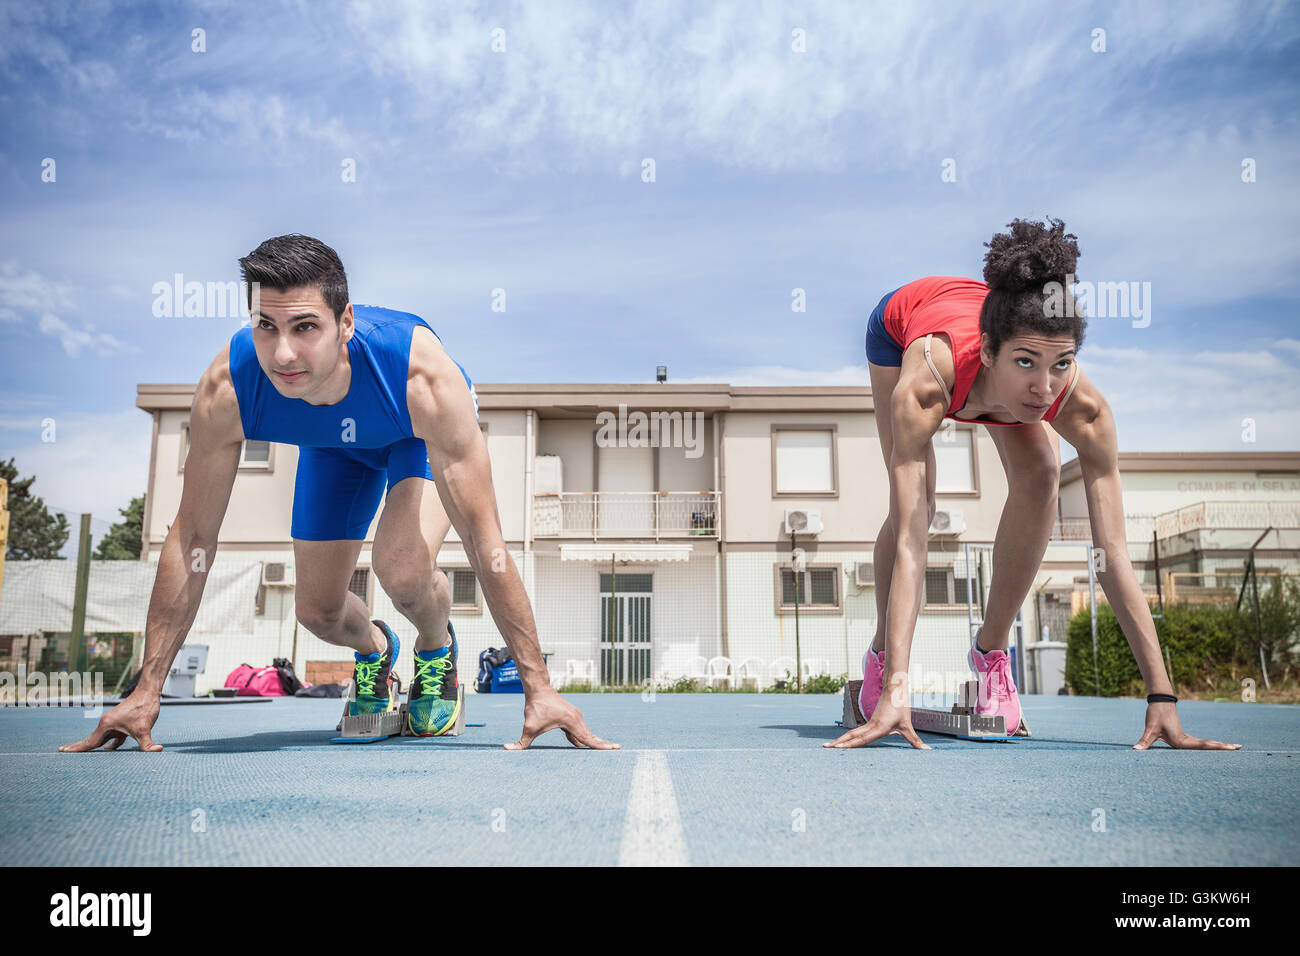 Young male and female sprinters on their marks on running track - Stock Image